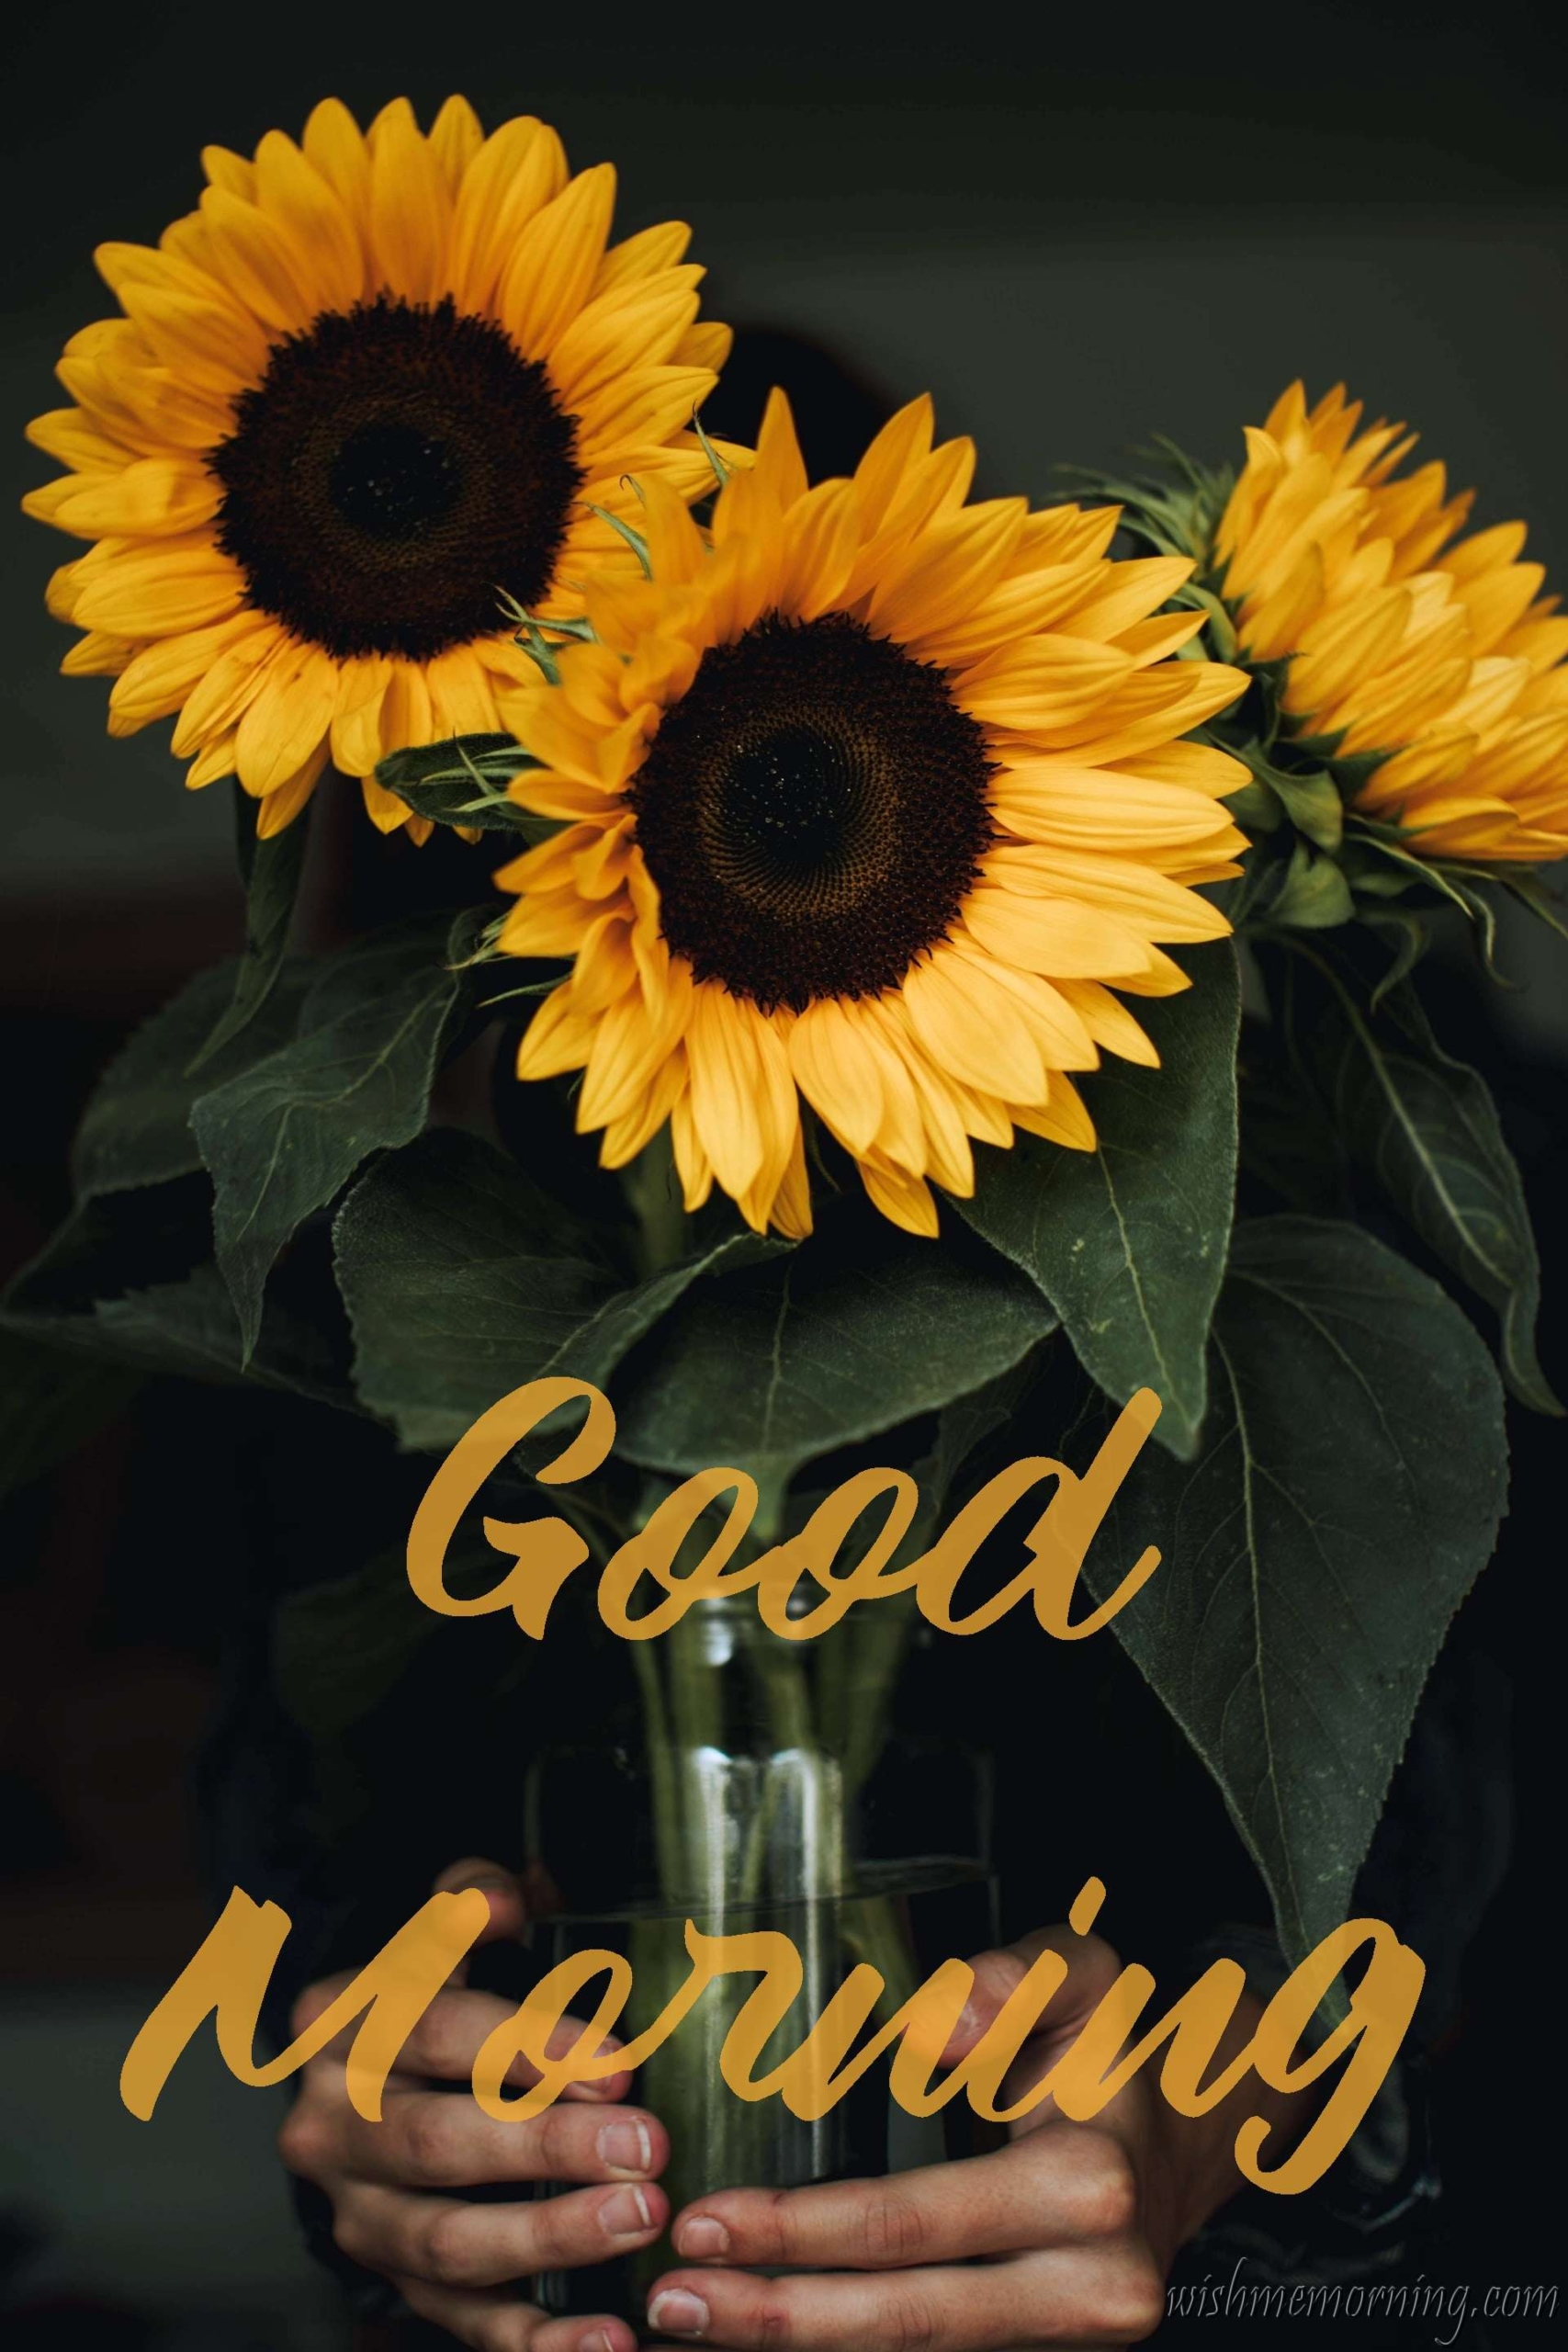 Three Yellow Sunflowers in Glass Holding Hands Good Morning Image